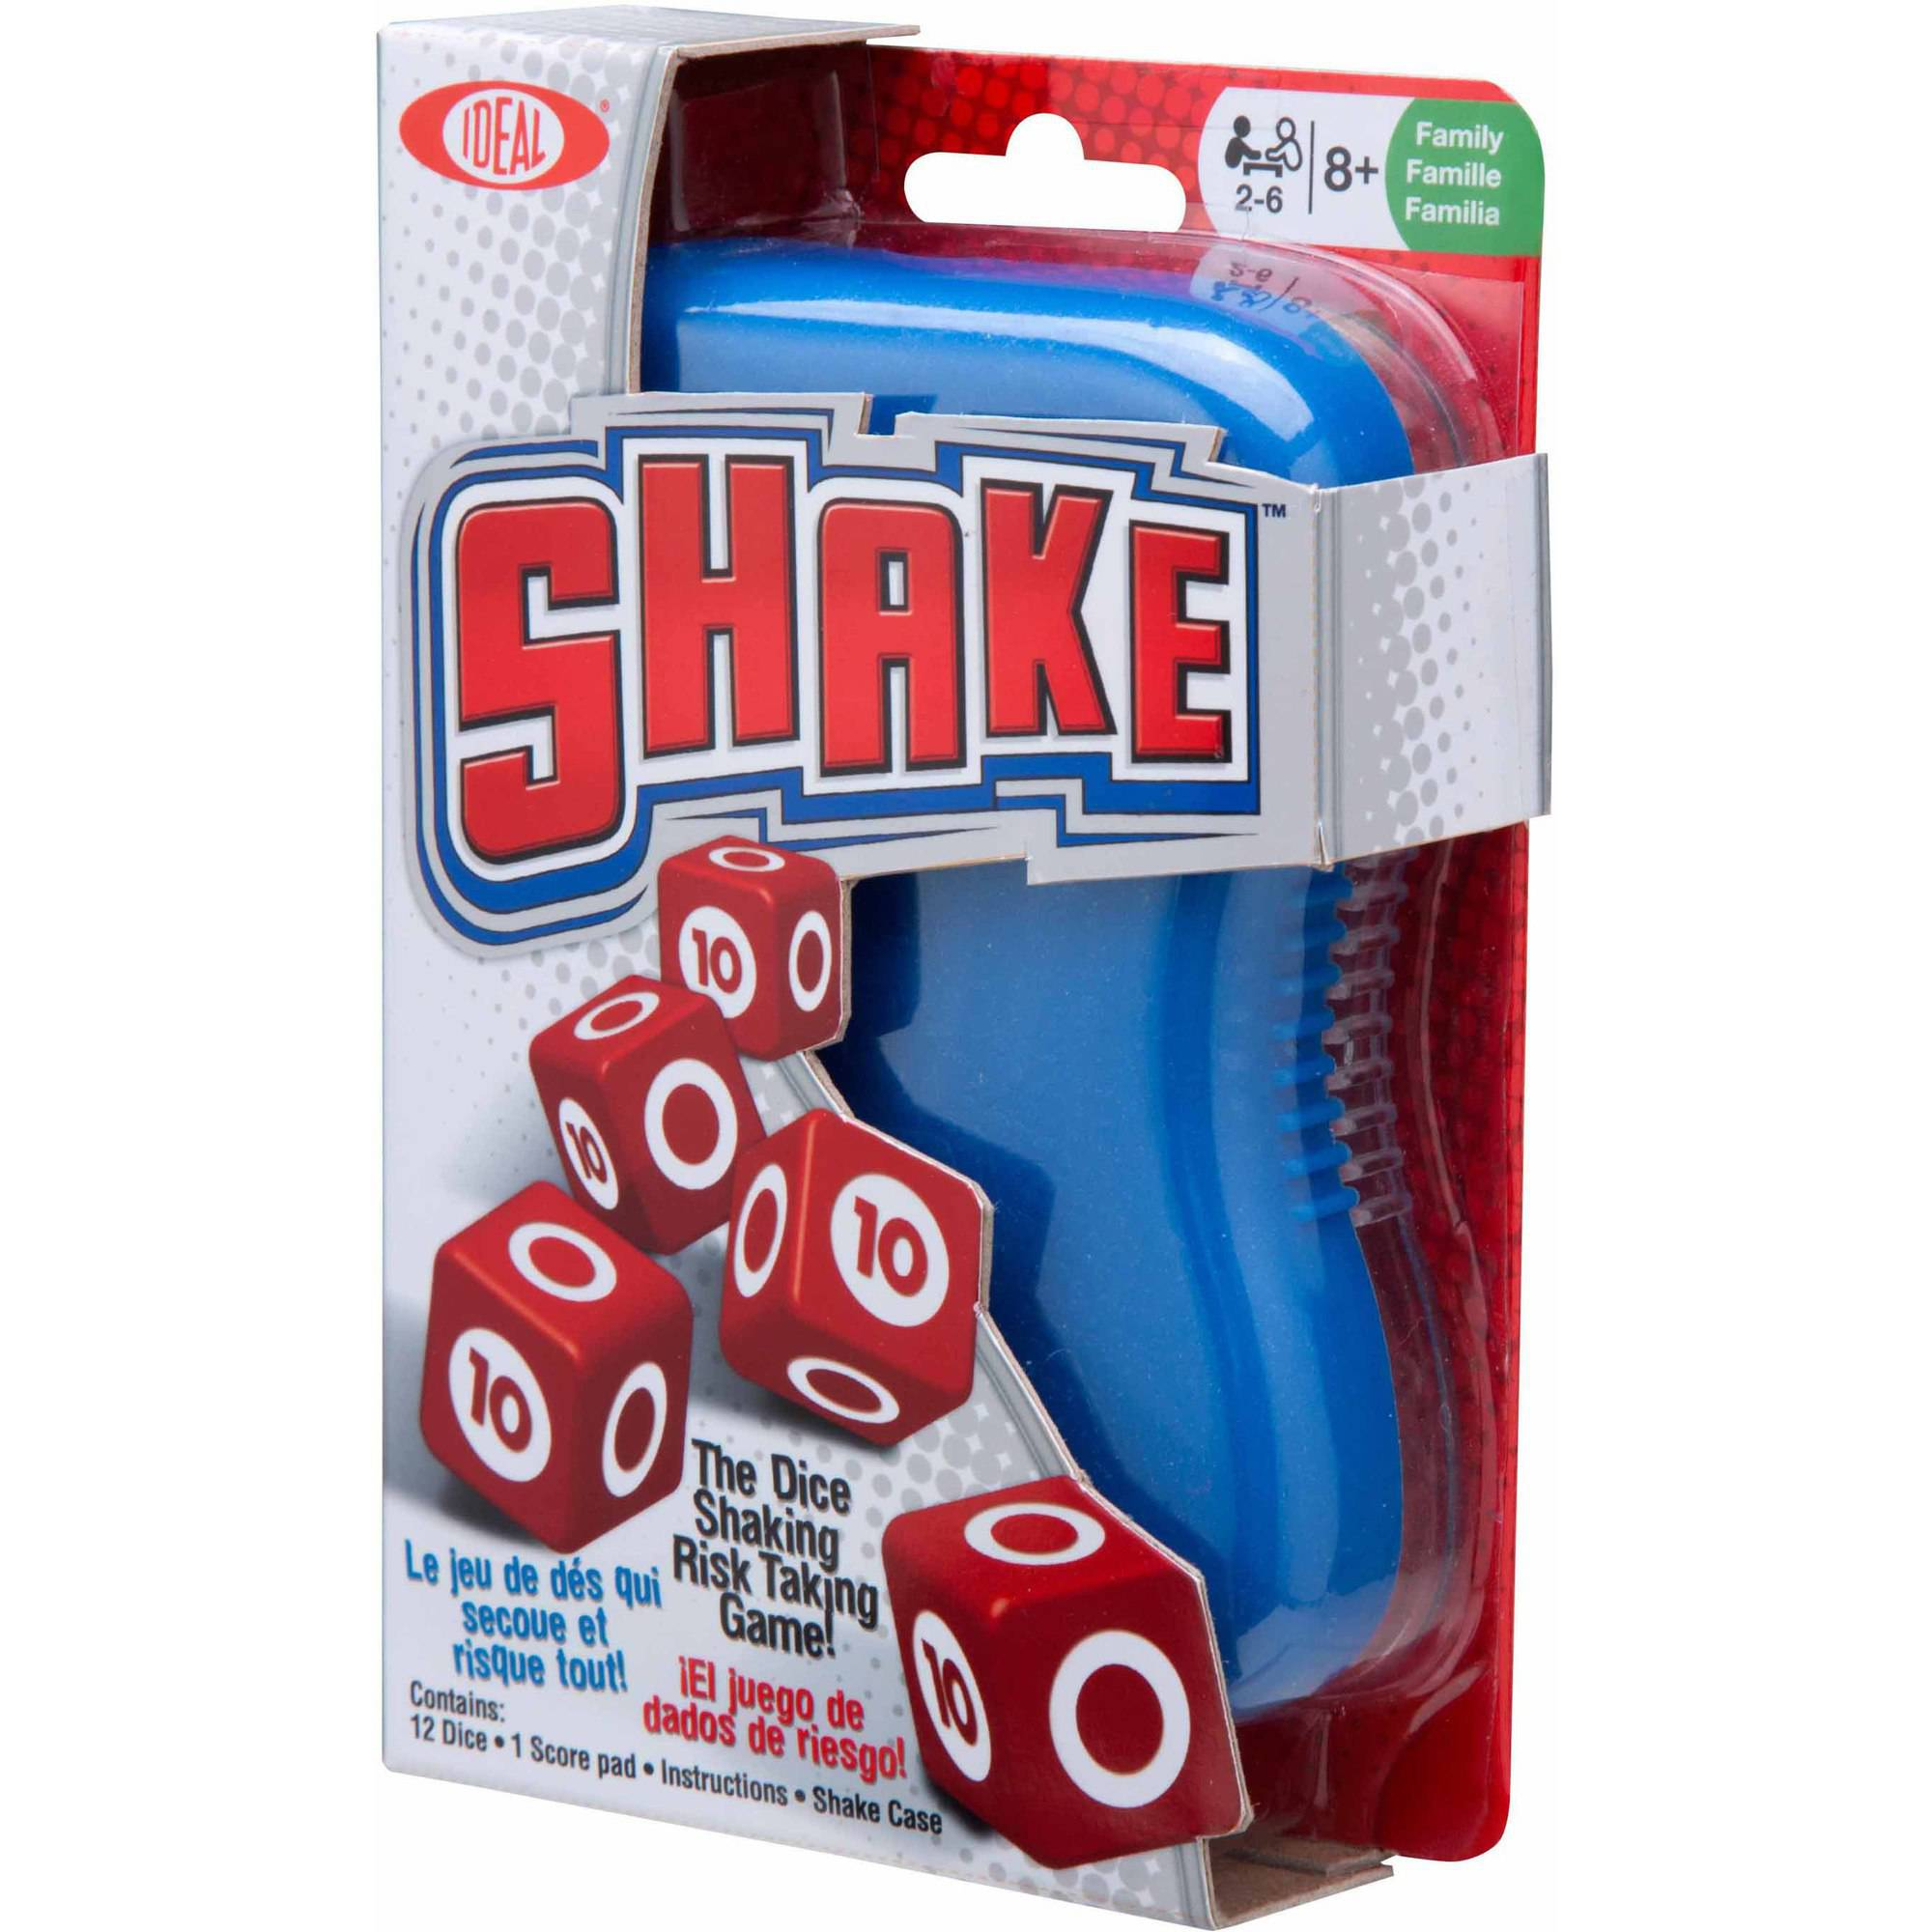 Ideal Shake Dice Game Walmartcom